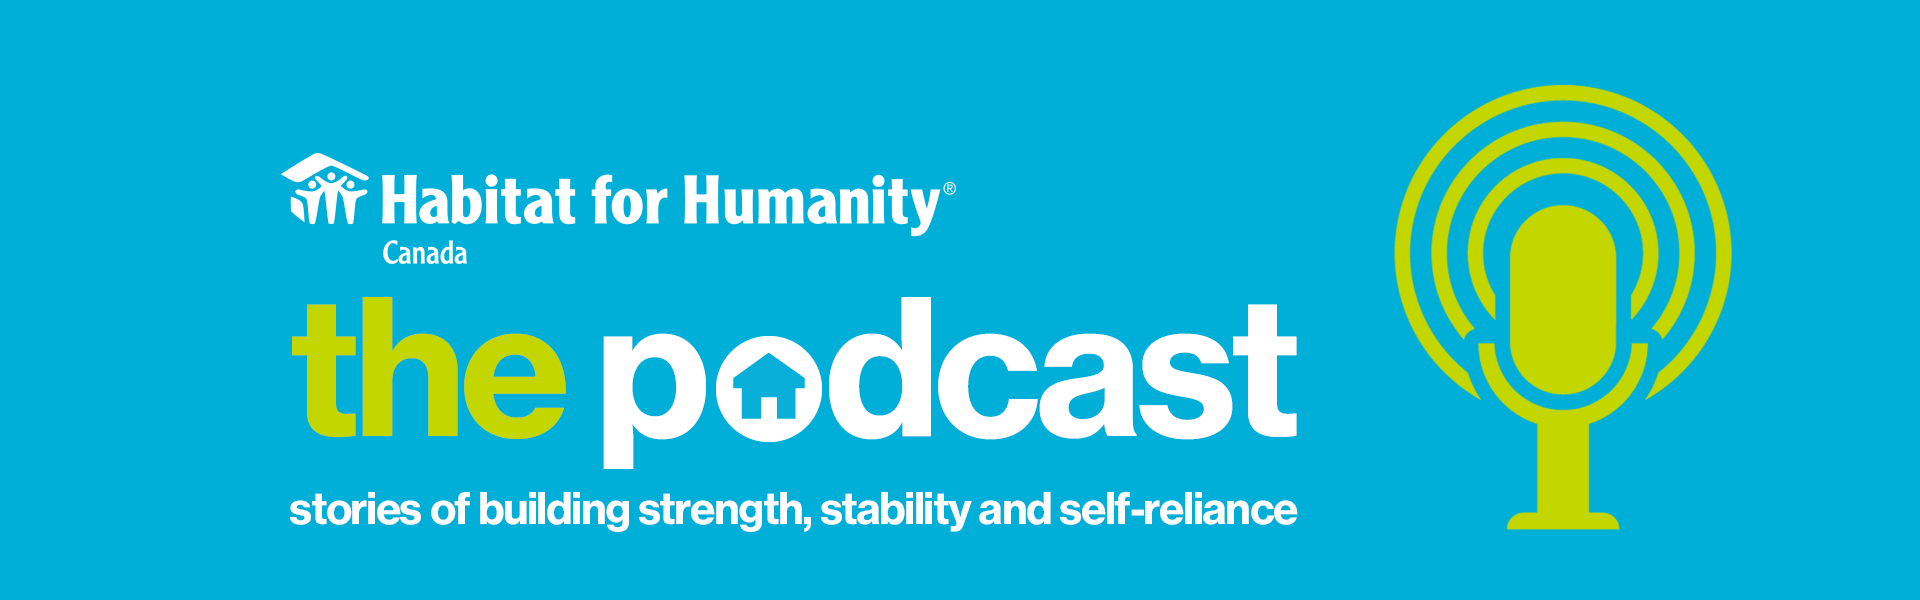 Habitat for Humanity Canada - The Podcast: stories of building strength, stability and self-reliance